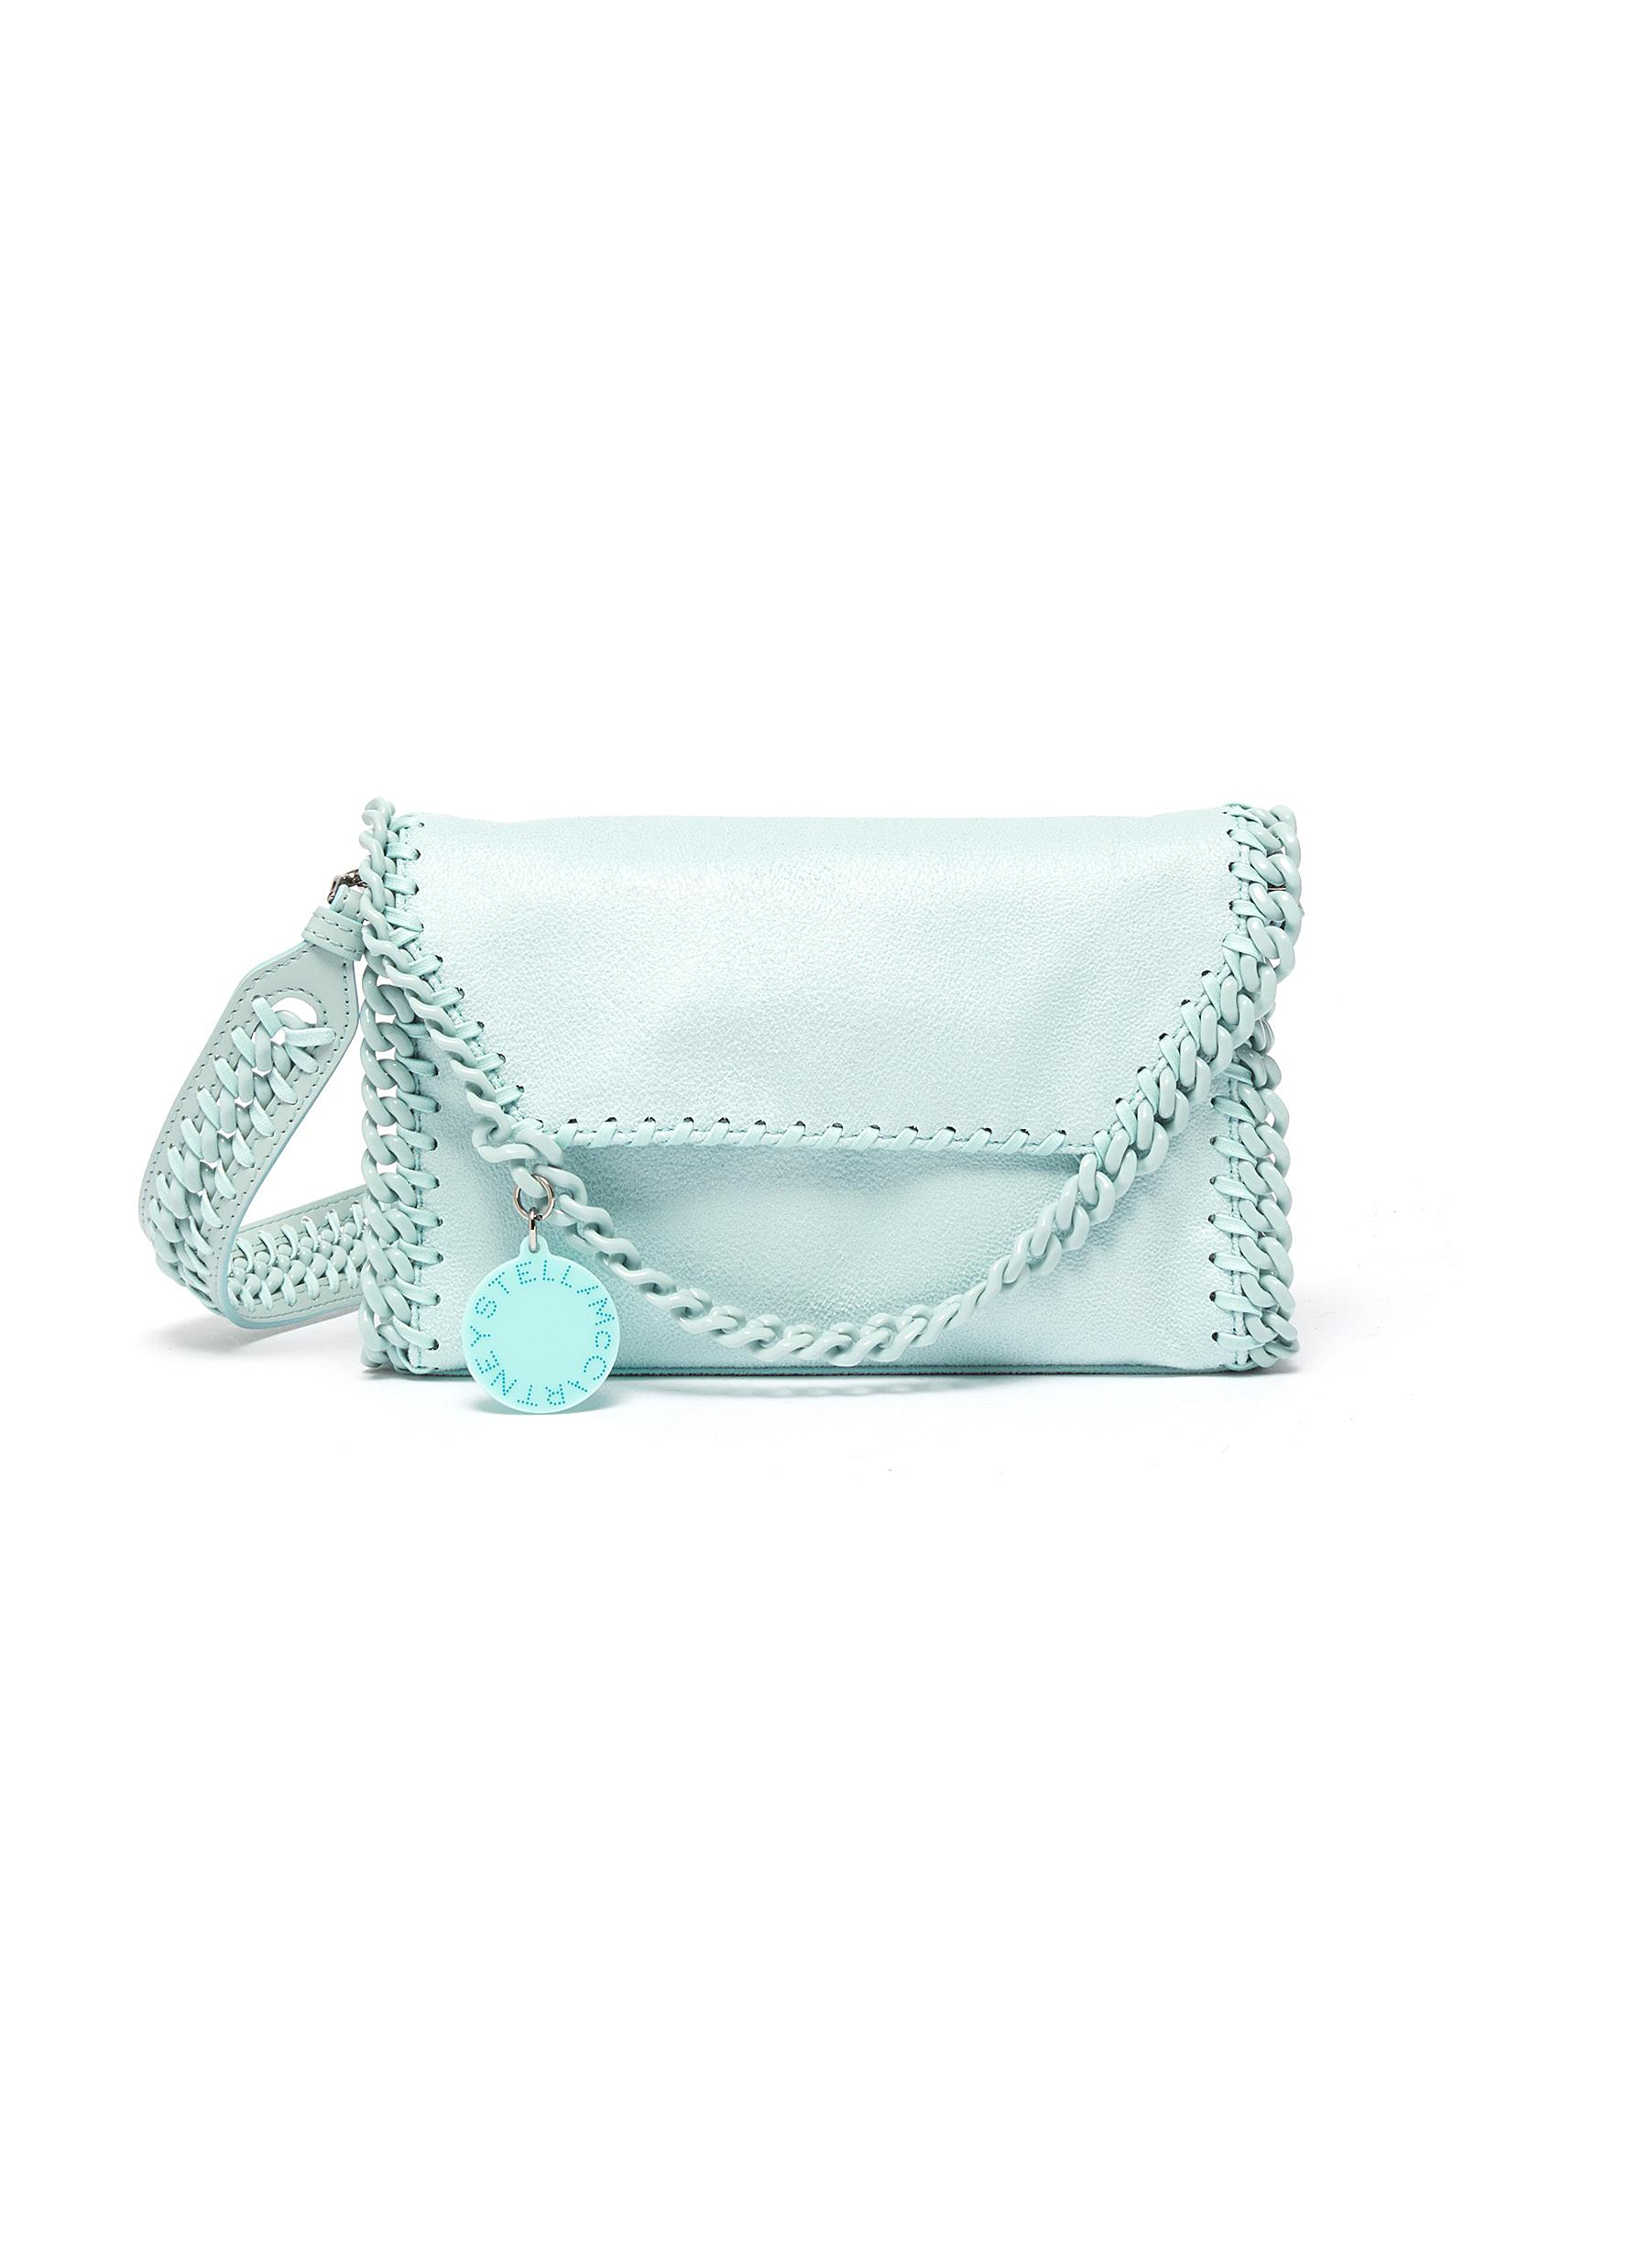 95a79766787555 Stella Mccartney 'Falabella Candy' Mini Shaggy Deer Shoulder Bag ...